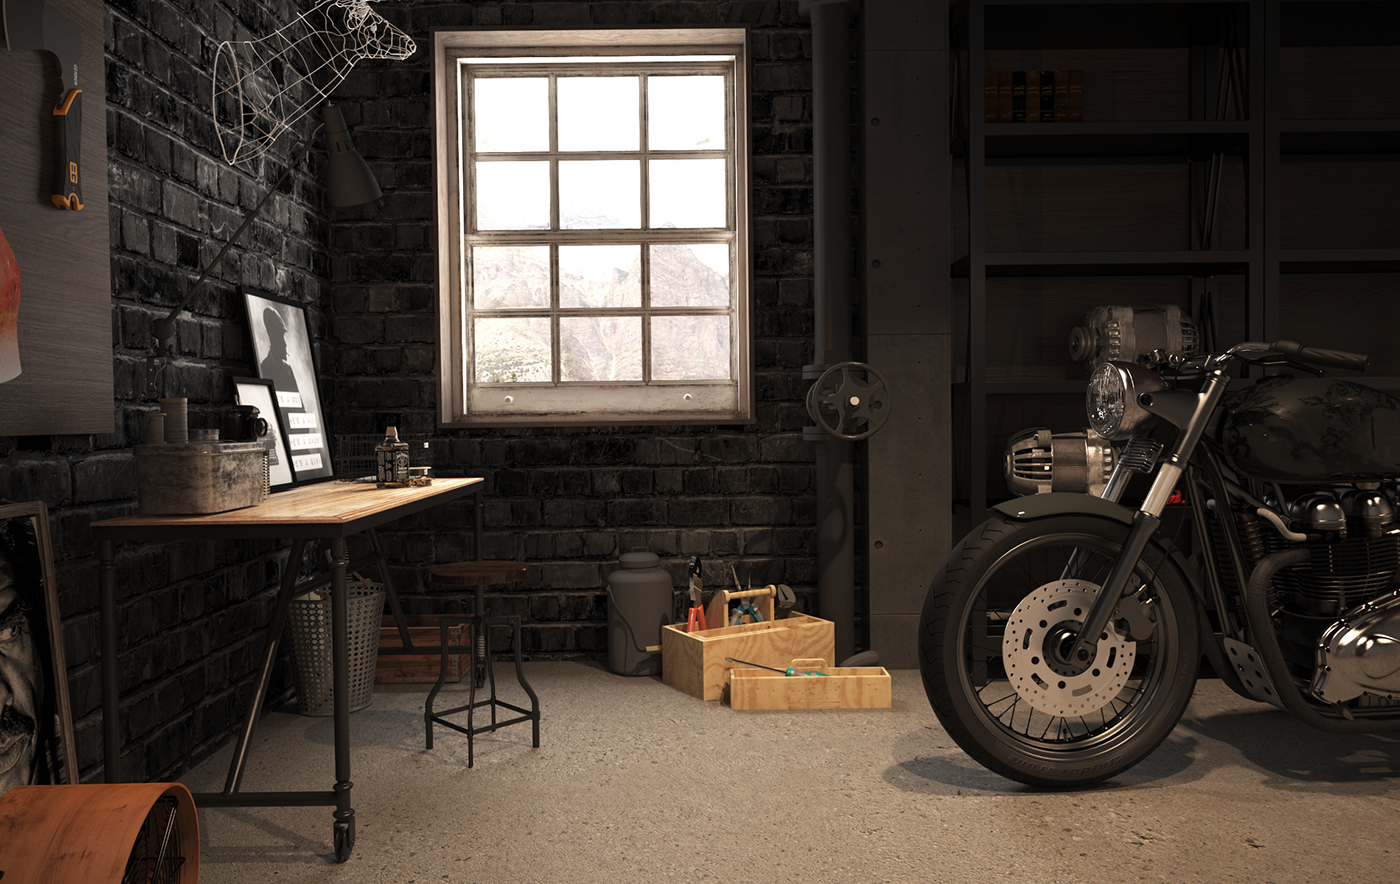 Vintage Motorcycle Garage on Behance